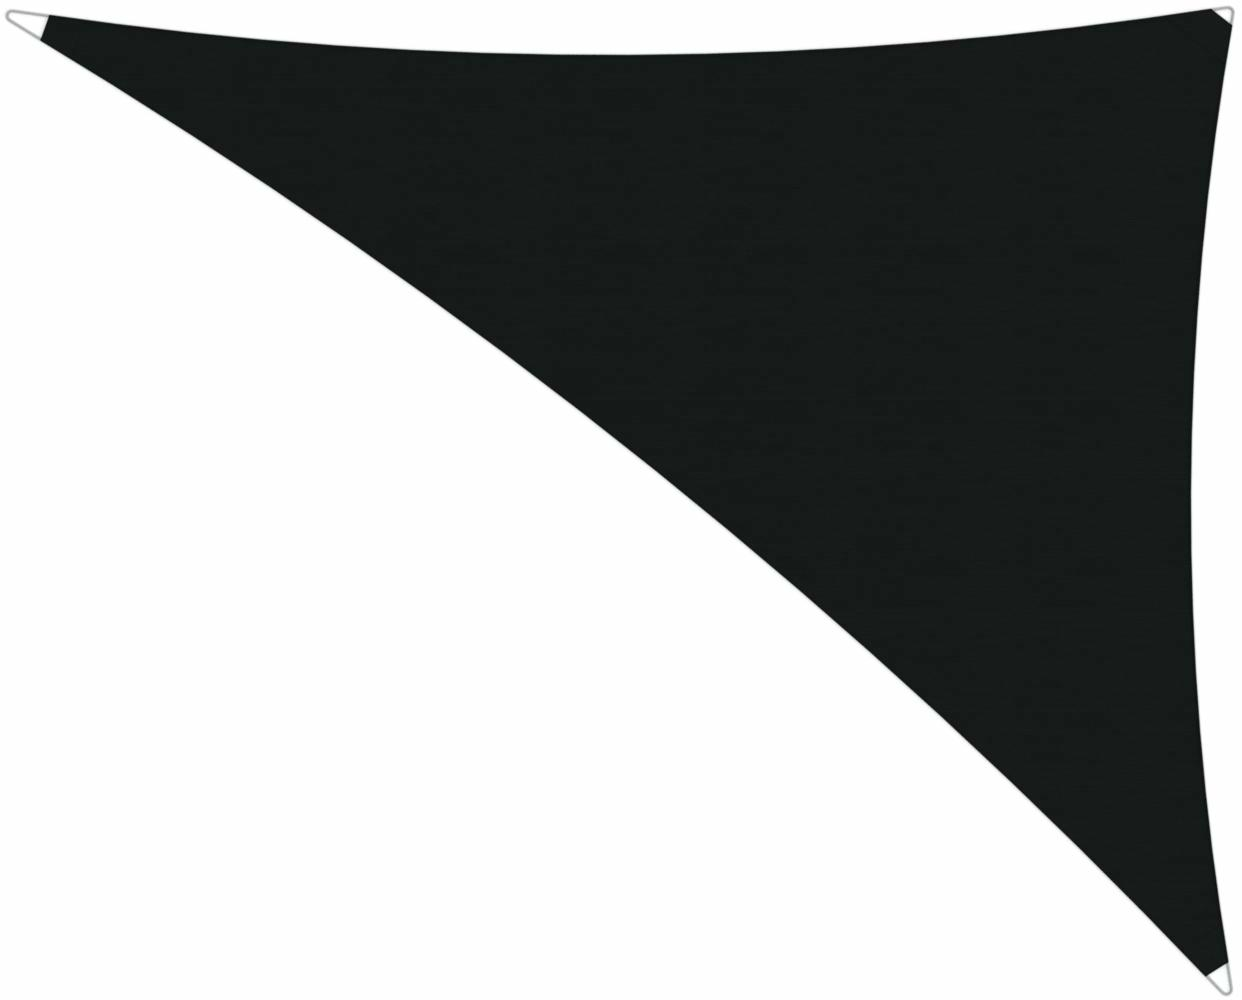 Ingenua shade sail Triangle 4 x 5 x 6,4 m, for outdoor use. Colour of the fabric shade sail Black.